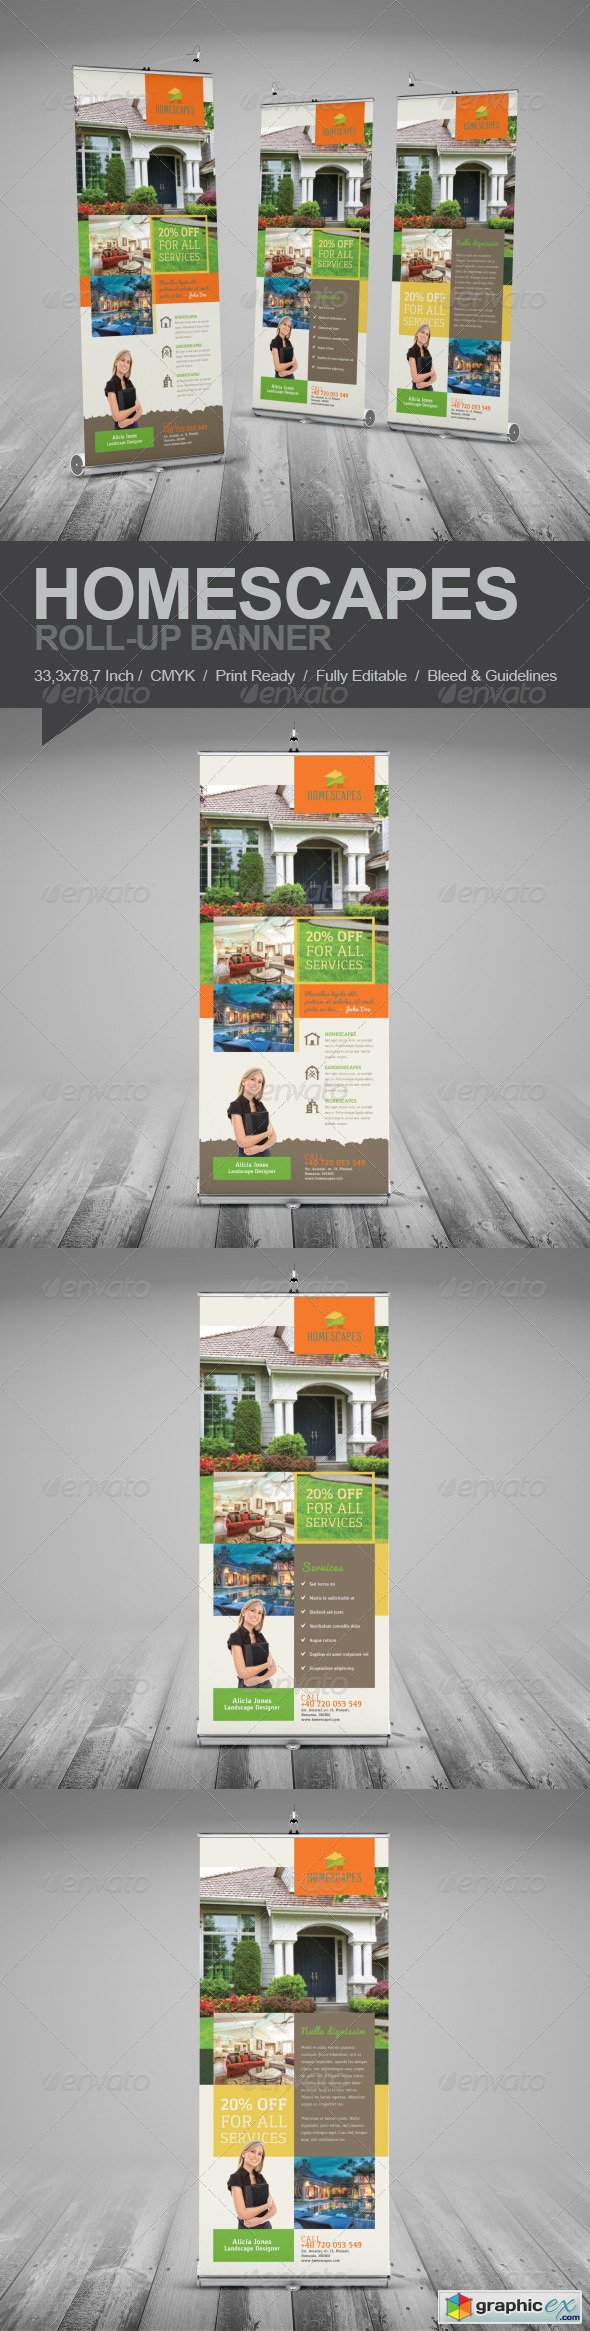 Real Estate And Homescapes Roll-Up Banner